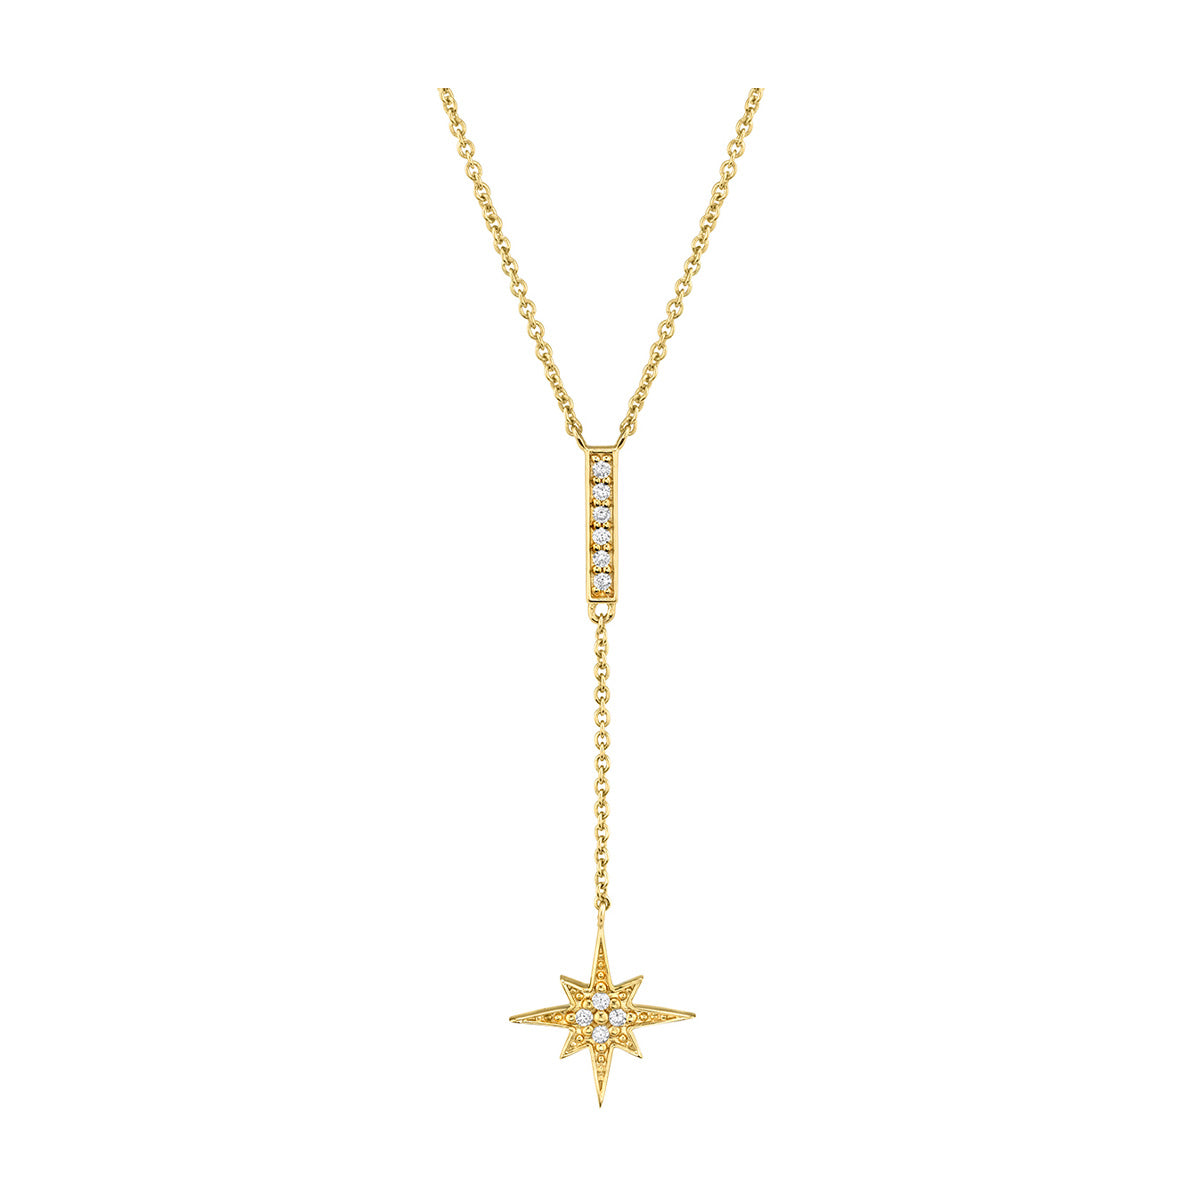 Pave Bar And Starburst Y-Necklace